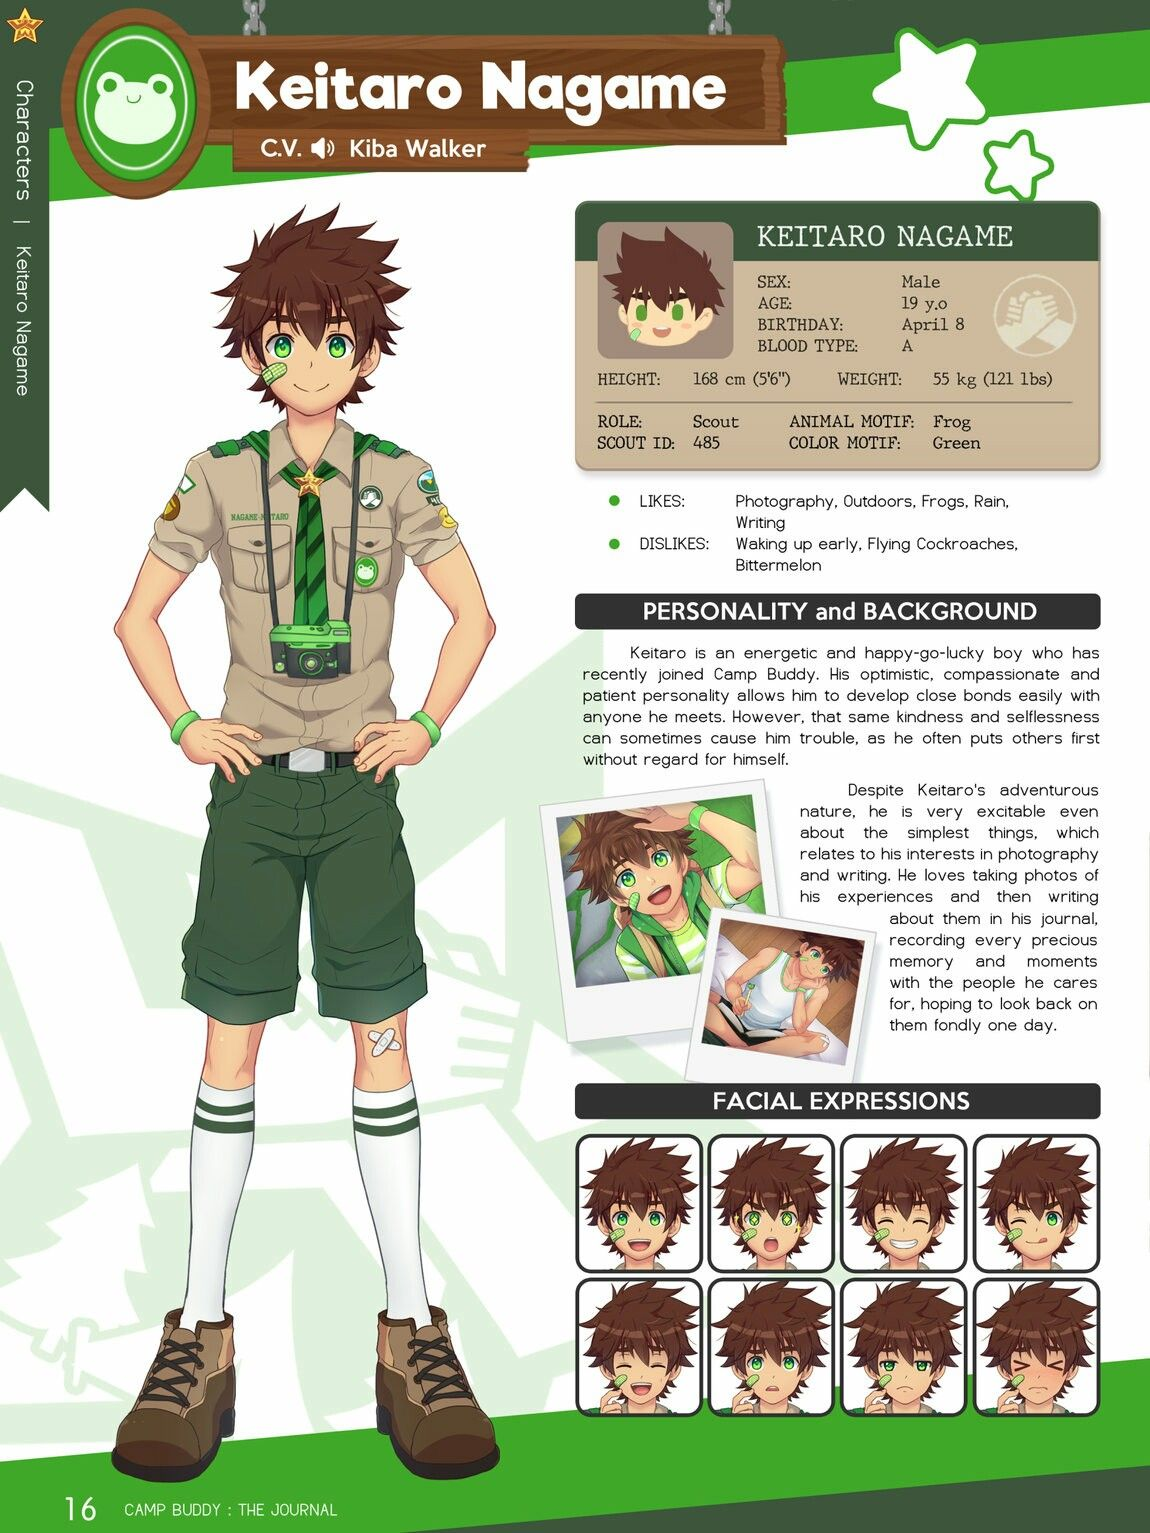 Pin by Lana Chan Anime on Camp Buddy Character Info's in